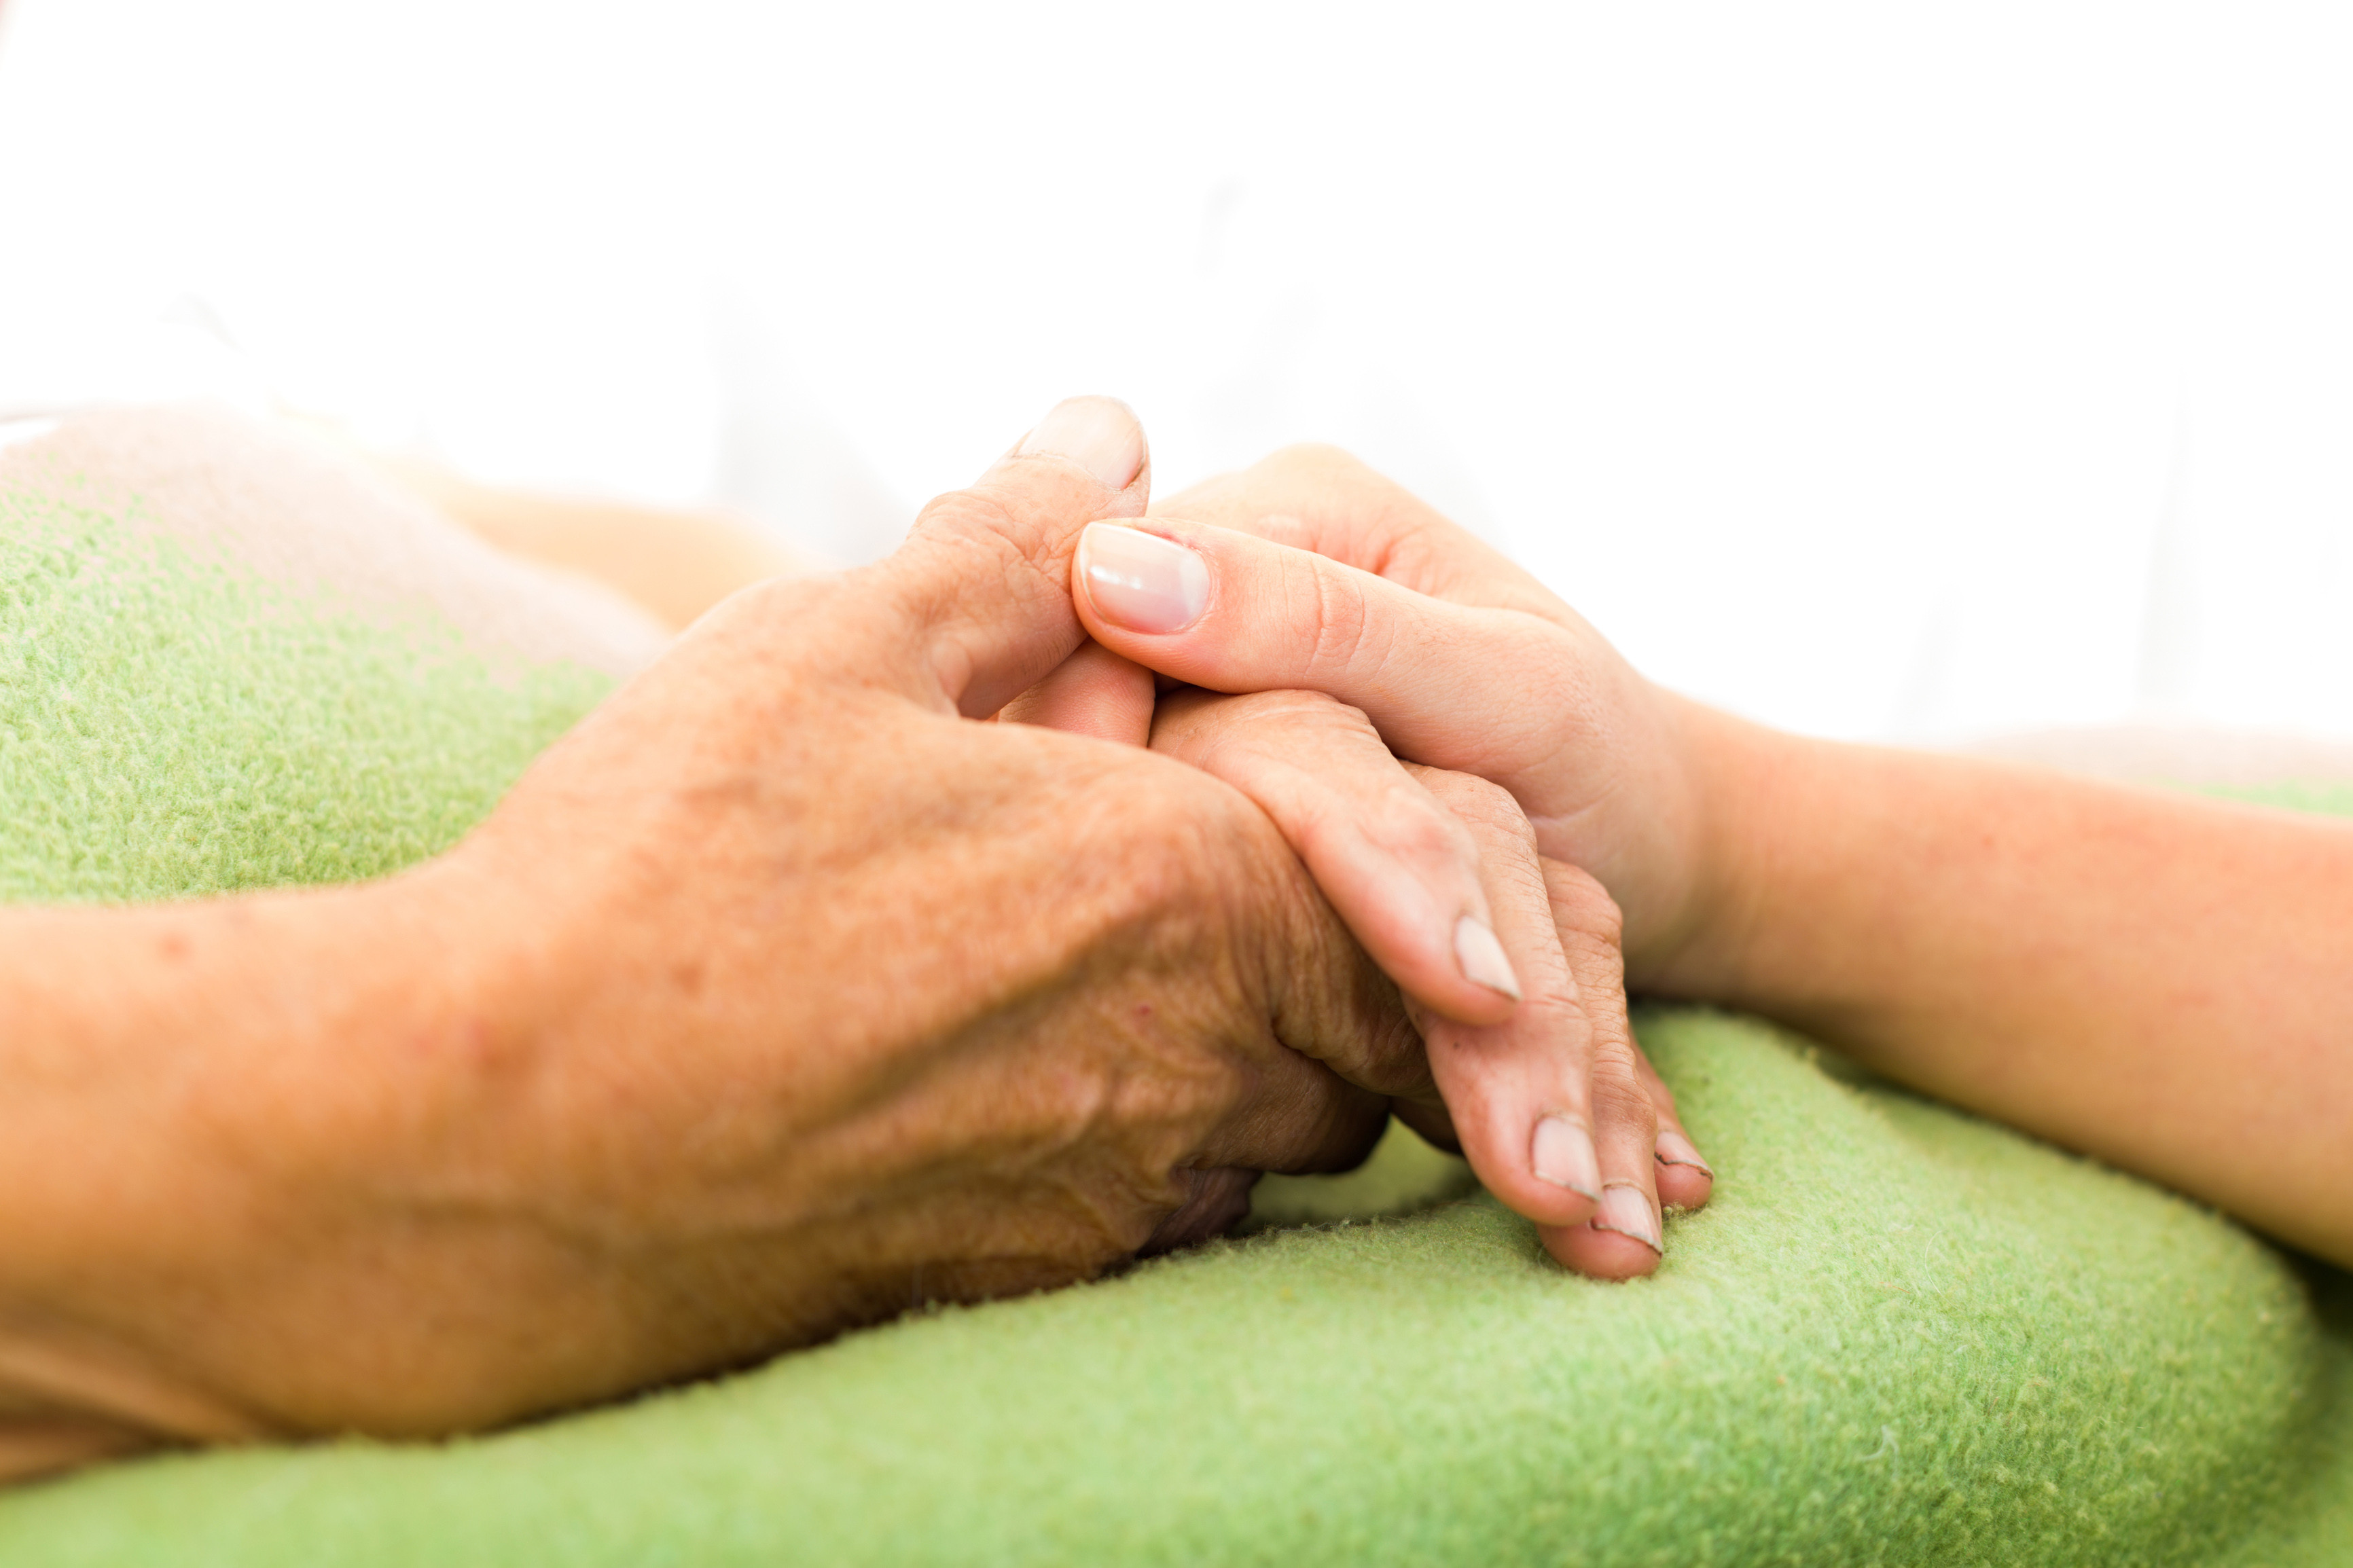 End of life support, care and advocacy